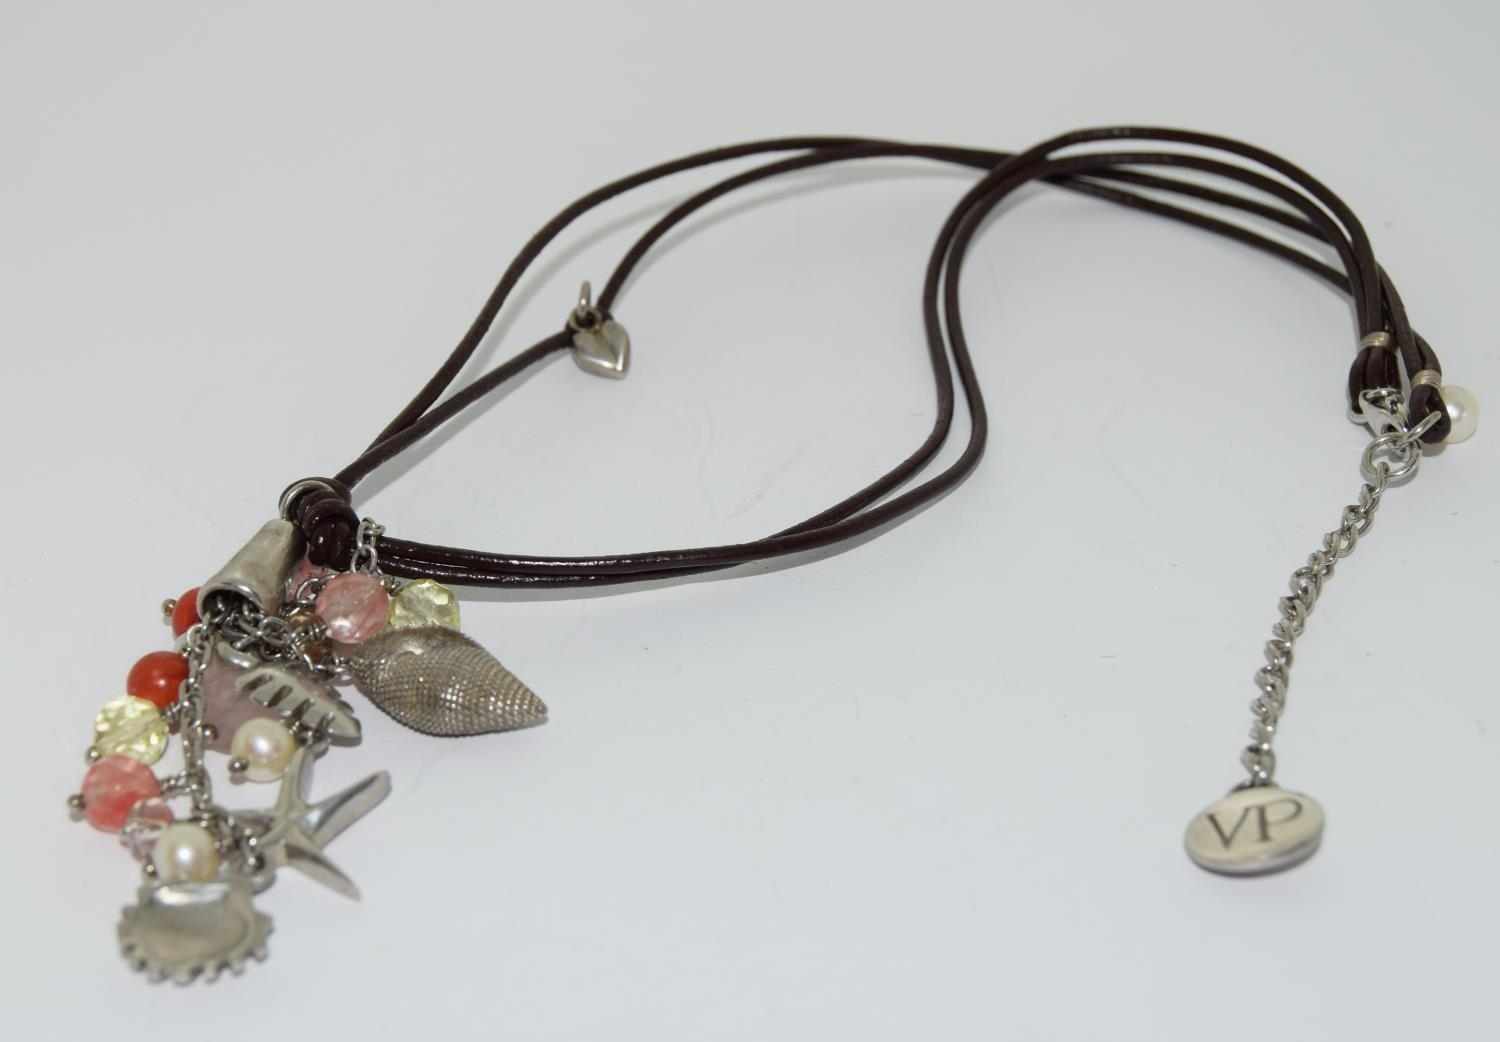 Van Peterson 925 silver agate leather necklace